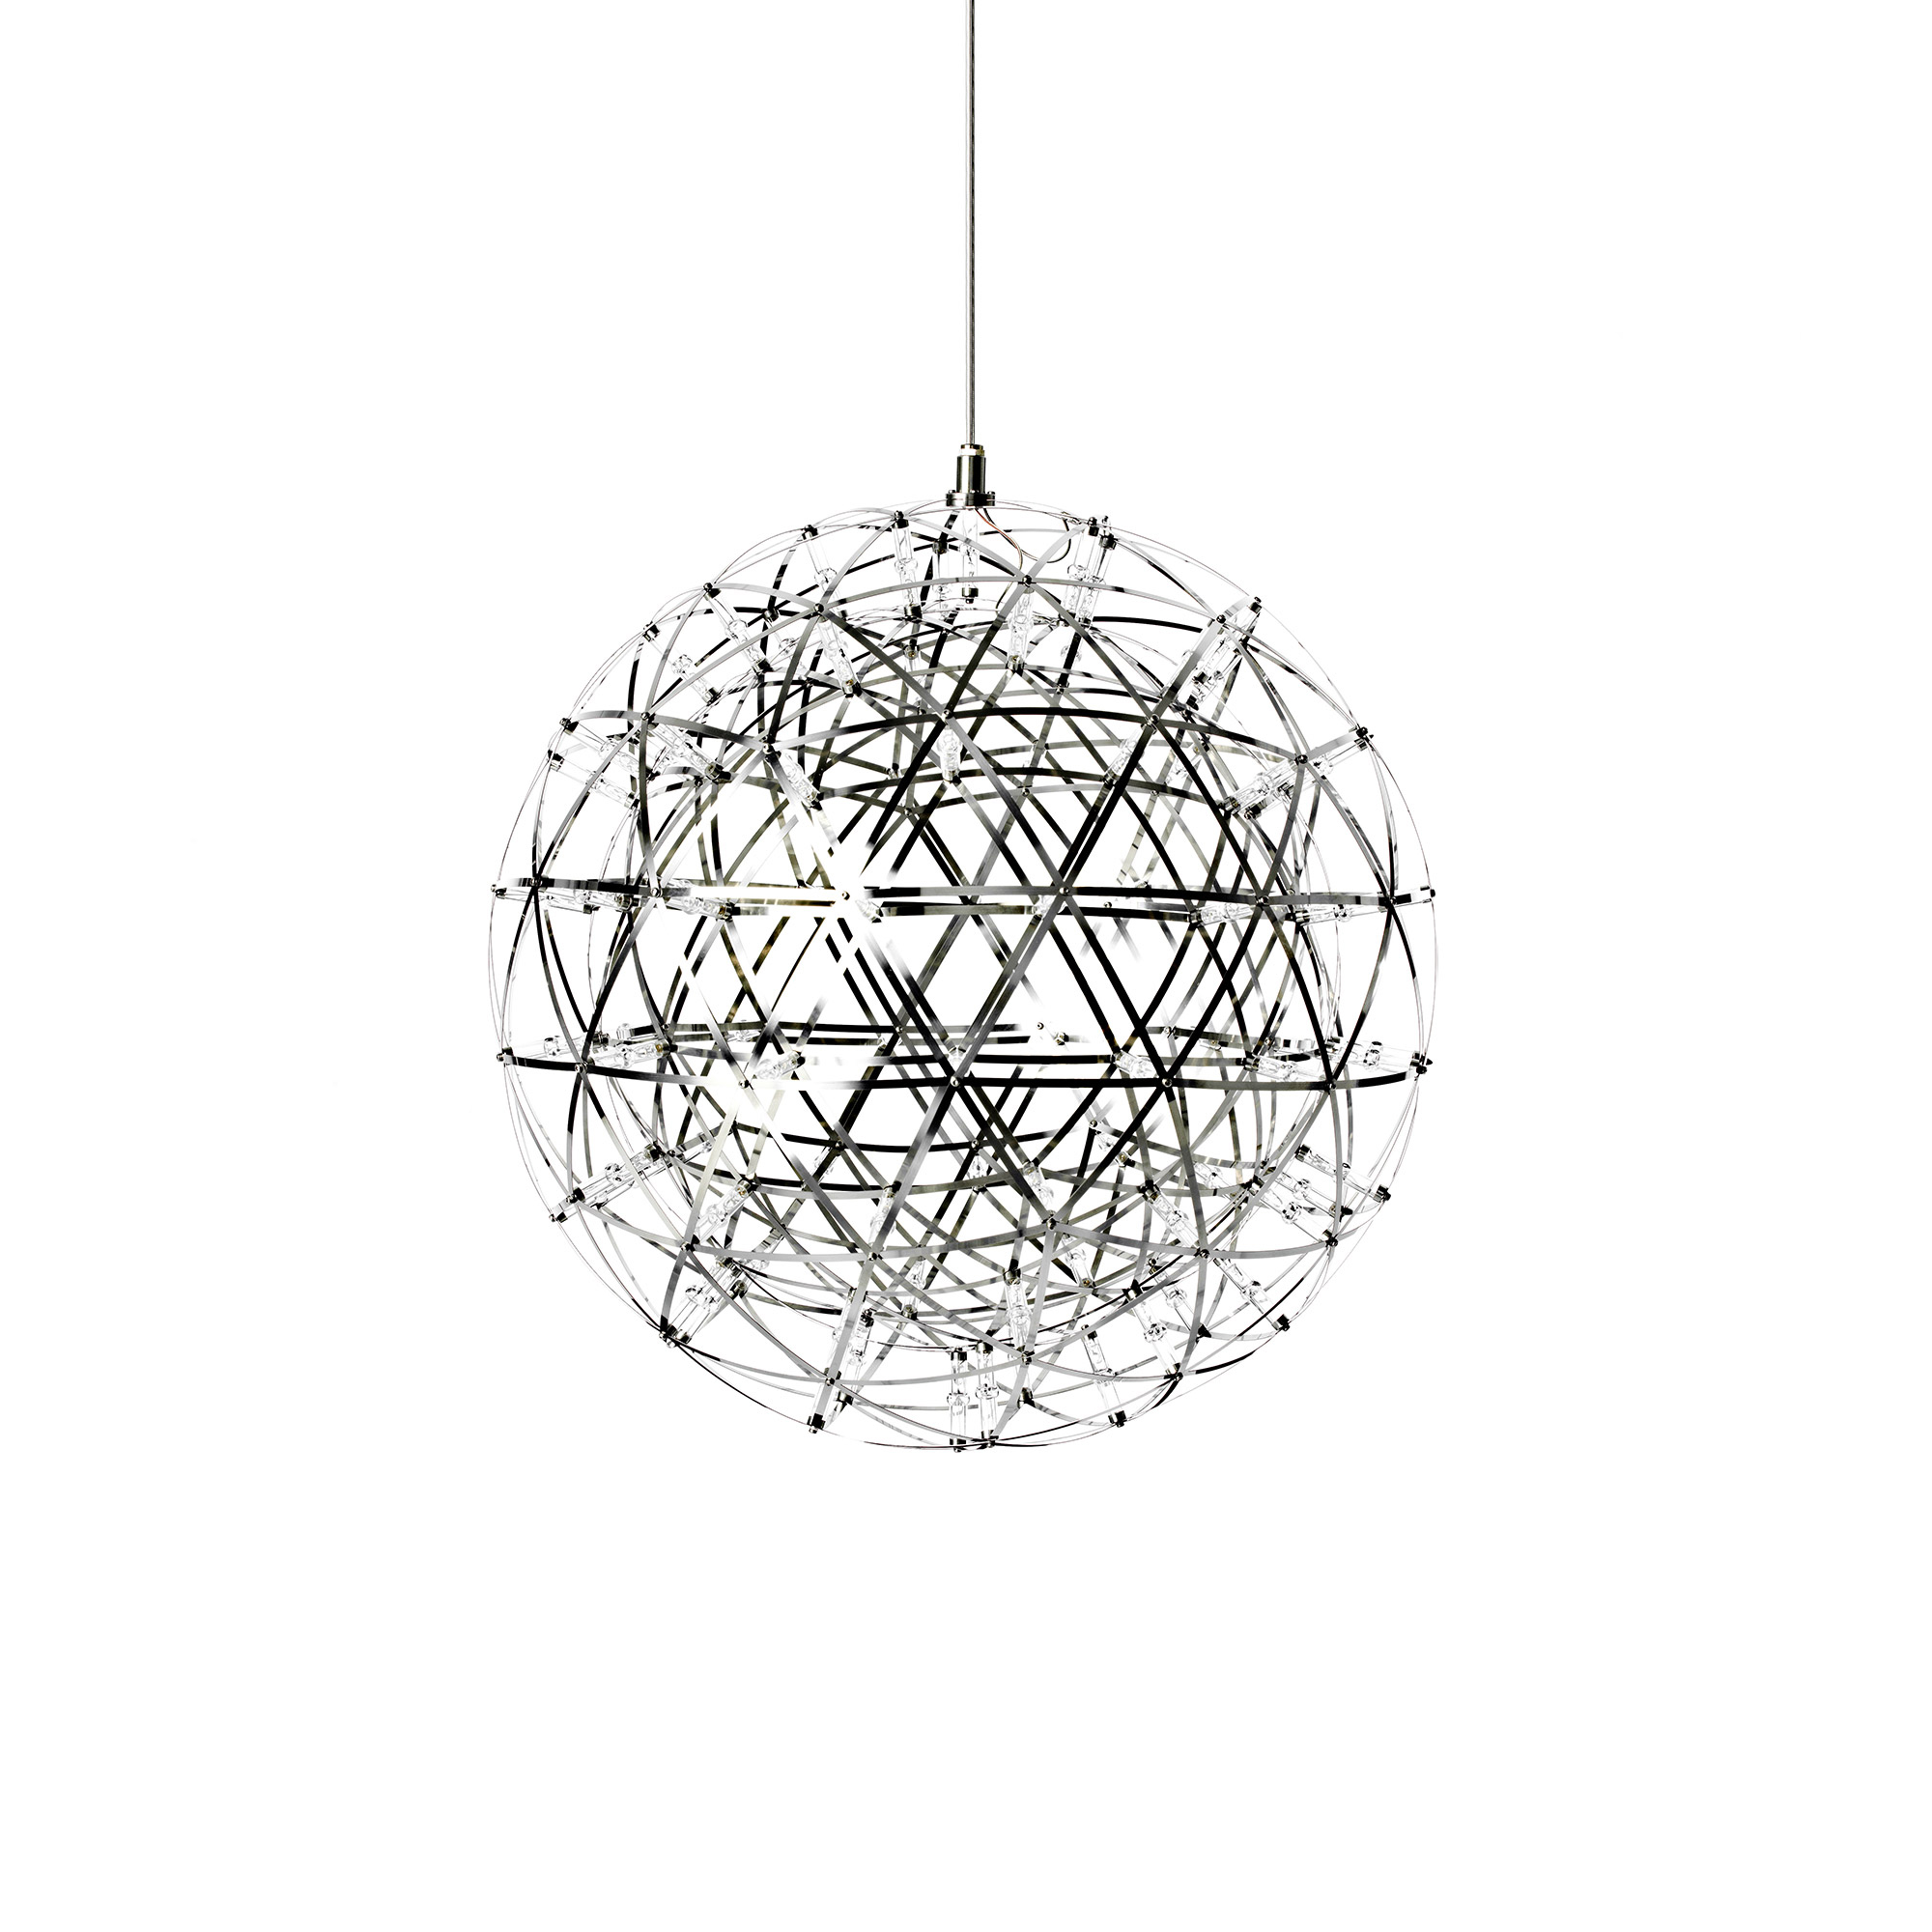 Dimmable LED Suspension UL Listed by Moooi | ULMOLLEDR43A for Moooi Raimond Zafu  153tgx